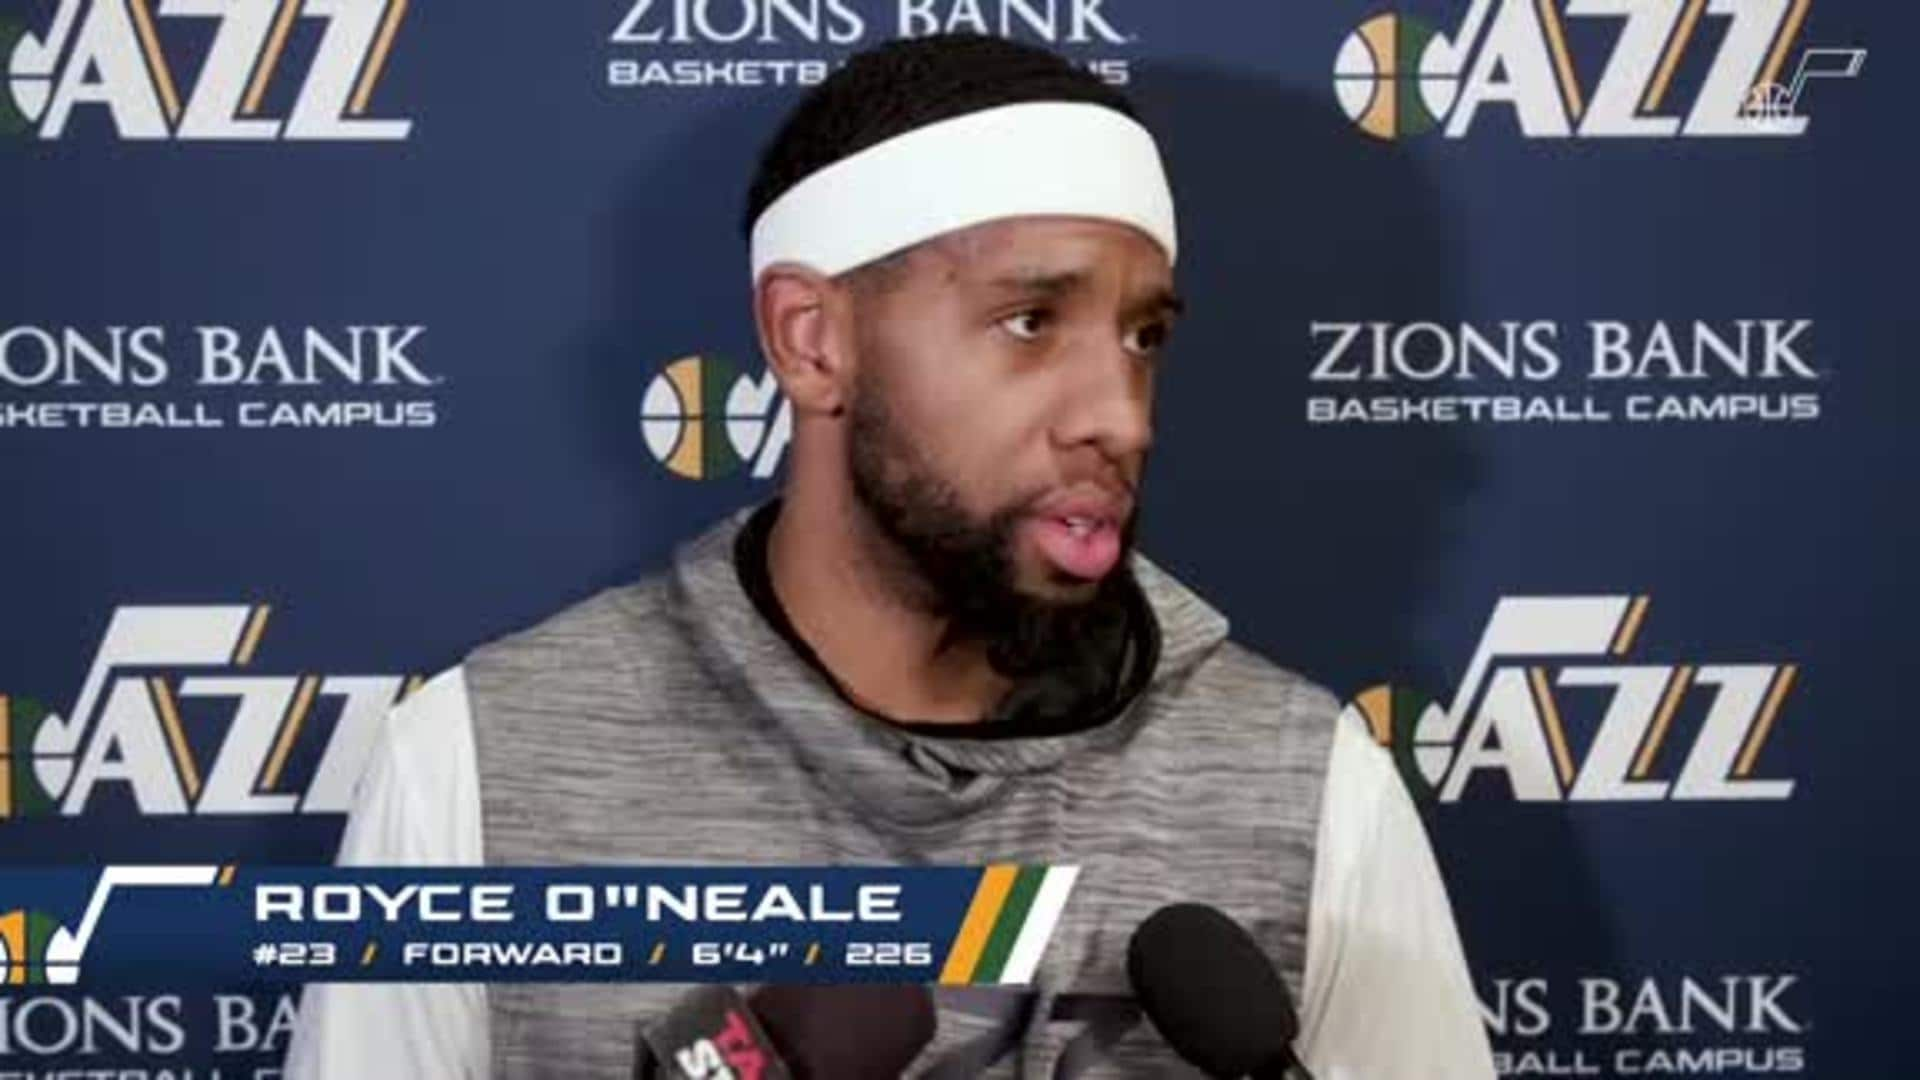 Shootaround Interviews, 2.7—Royce O'Neale